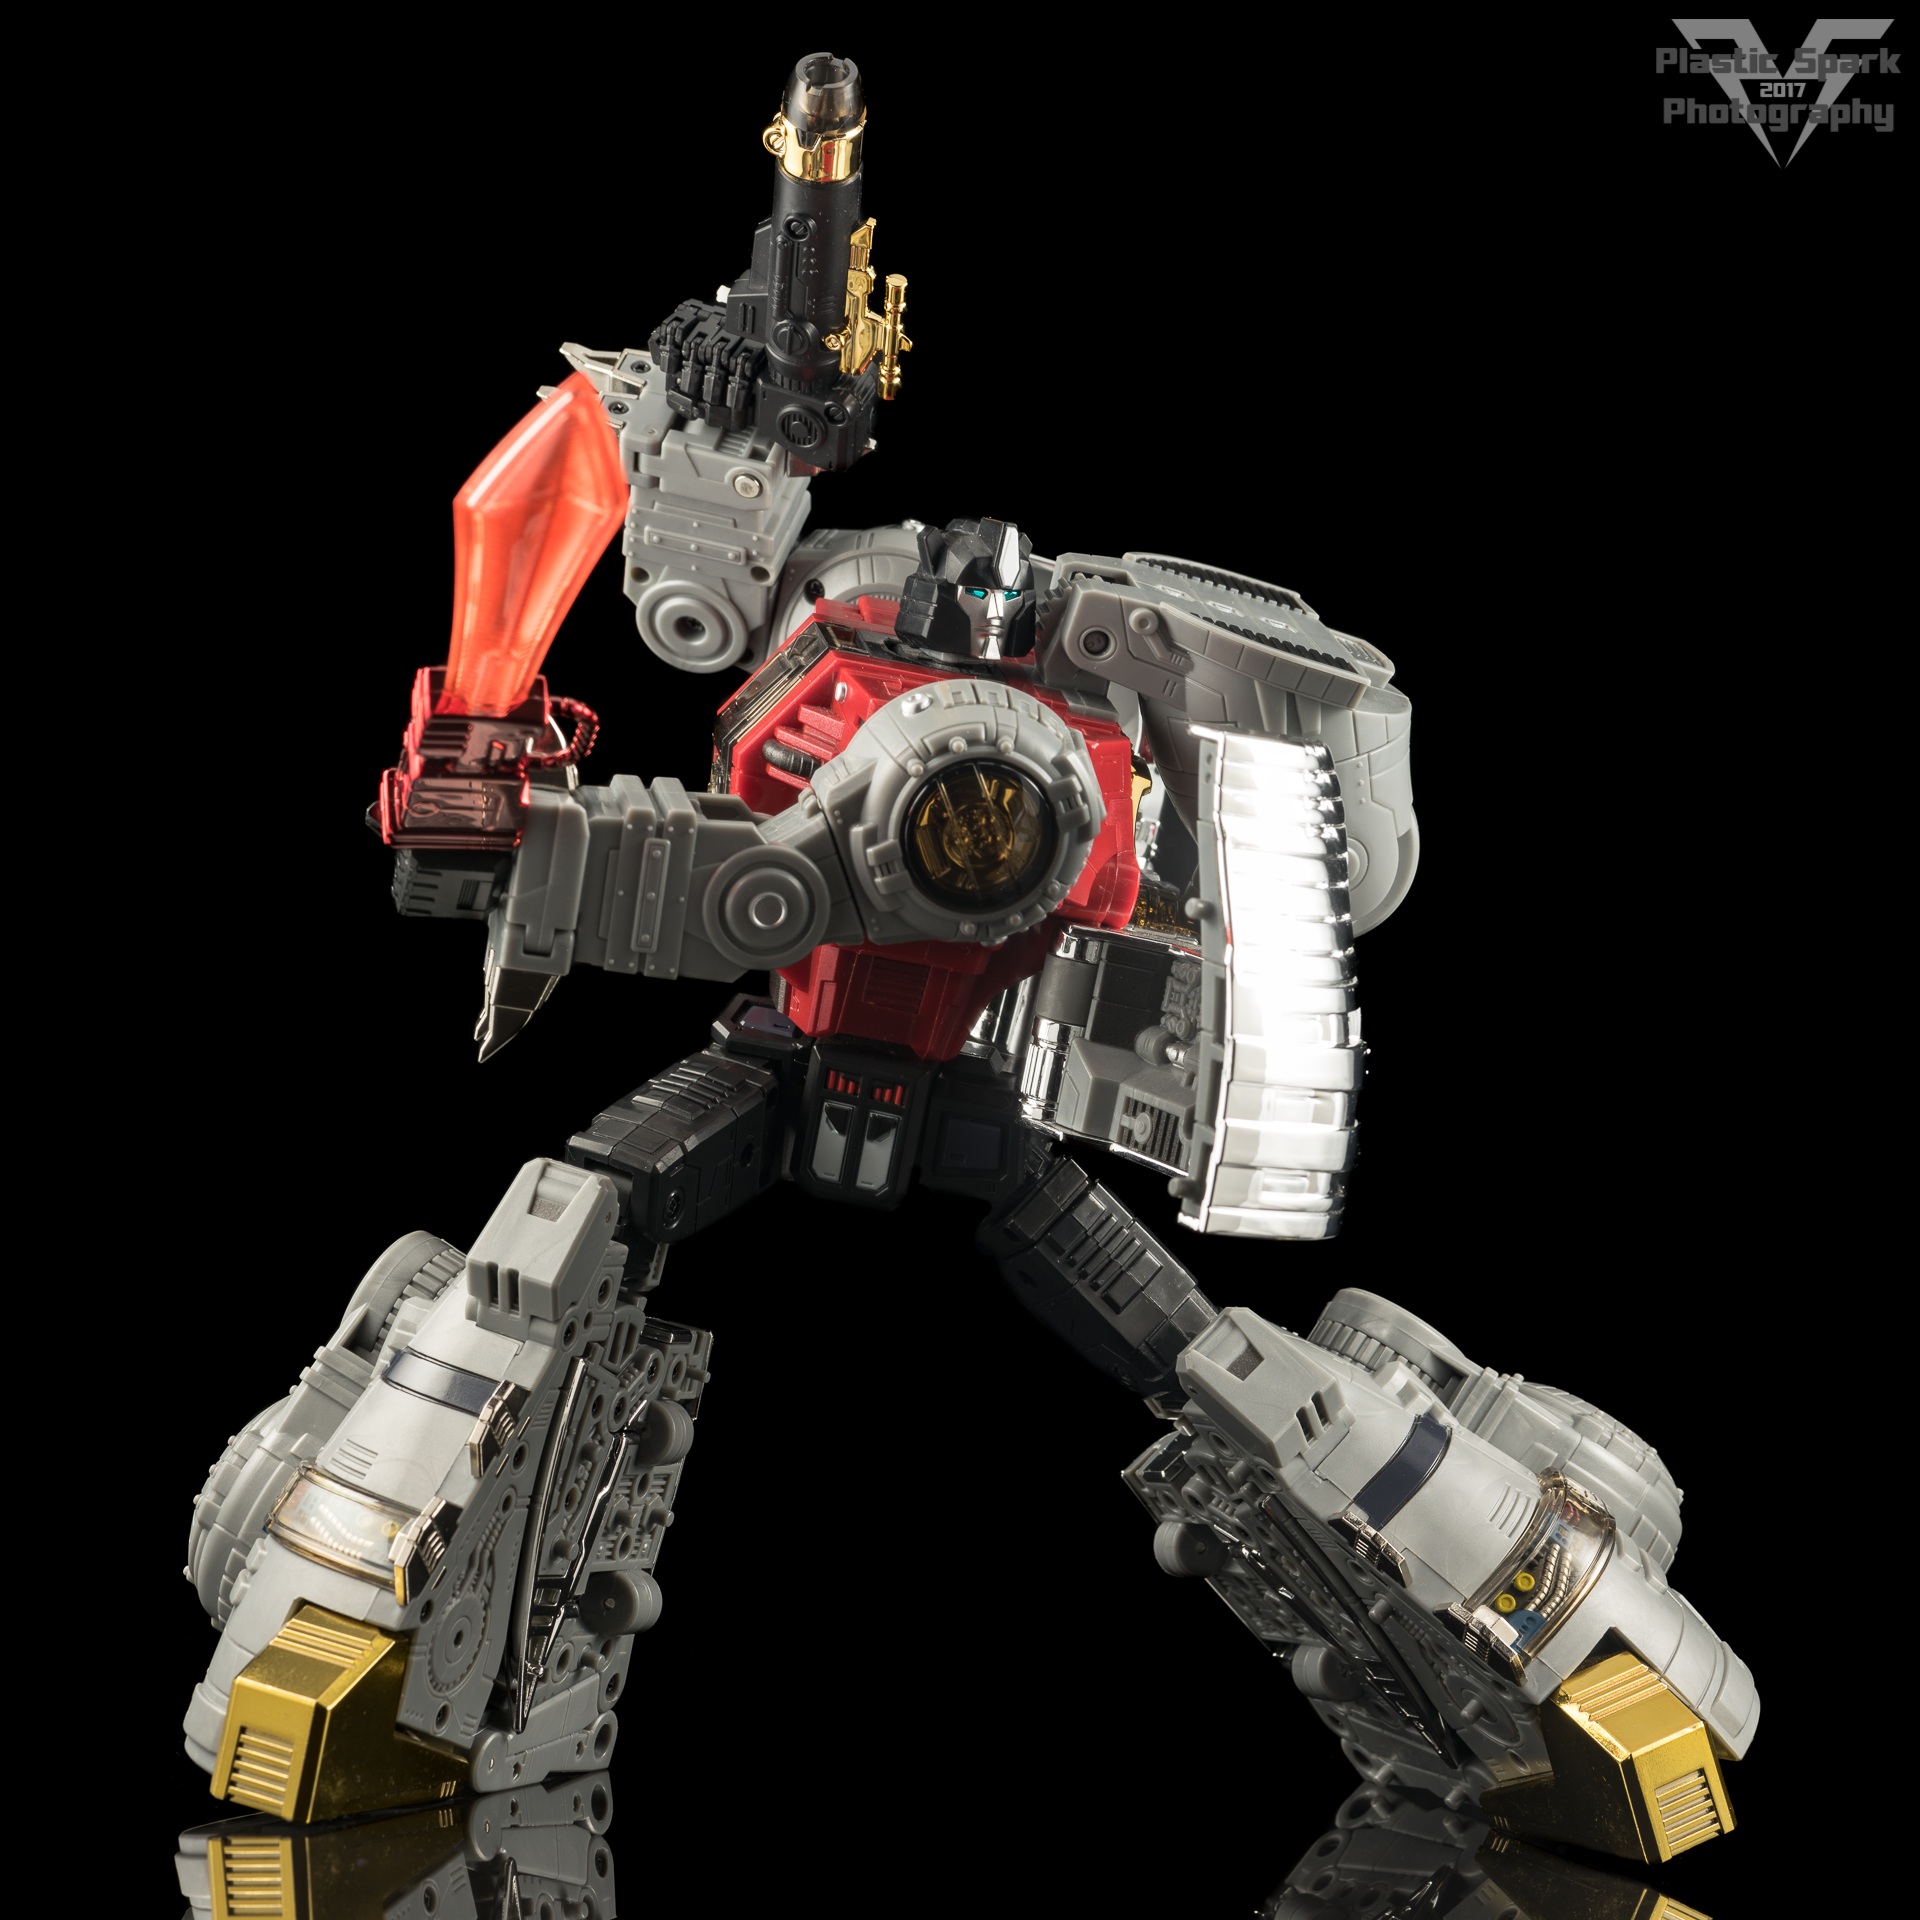 Fans-Toys-Iron-Dibots-(25-of-41).png